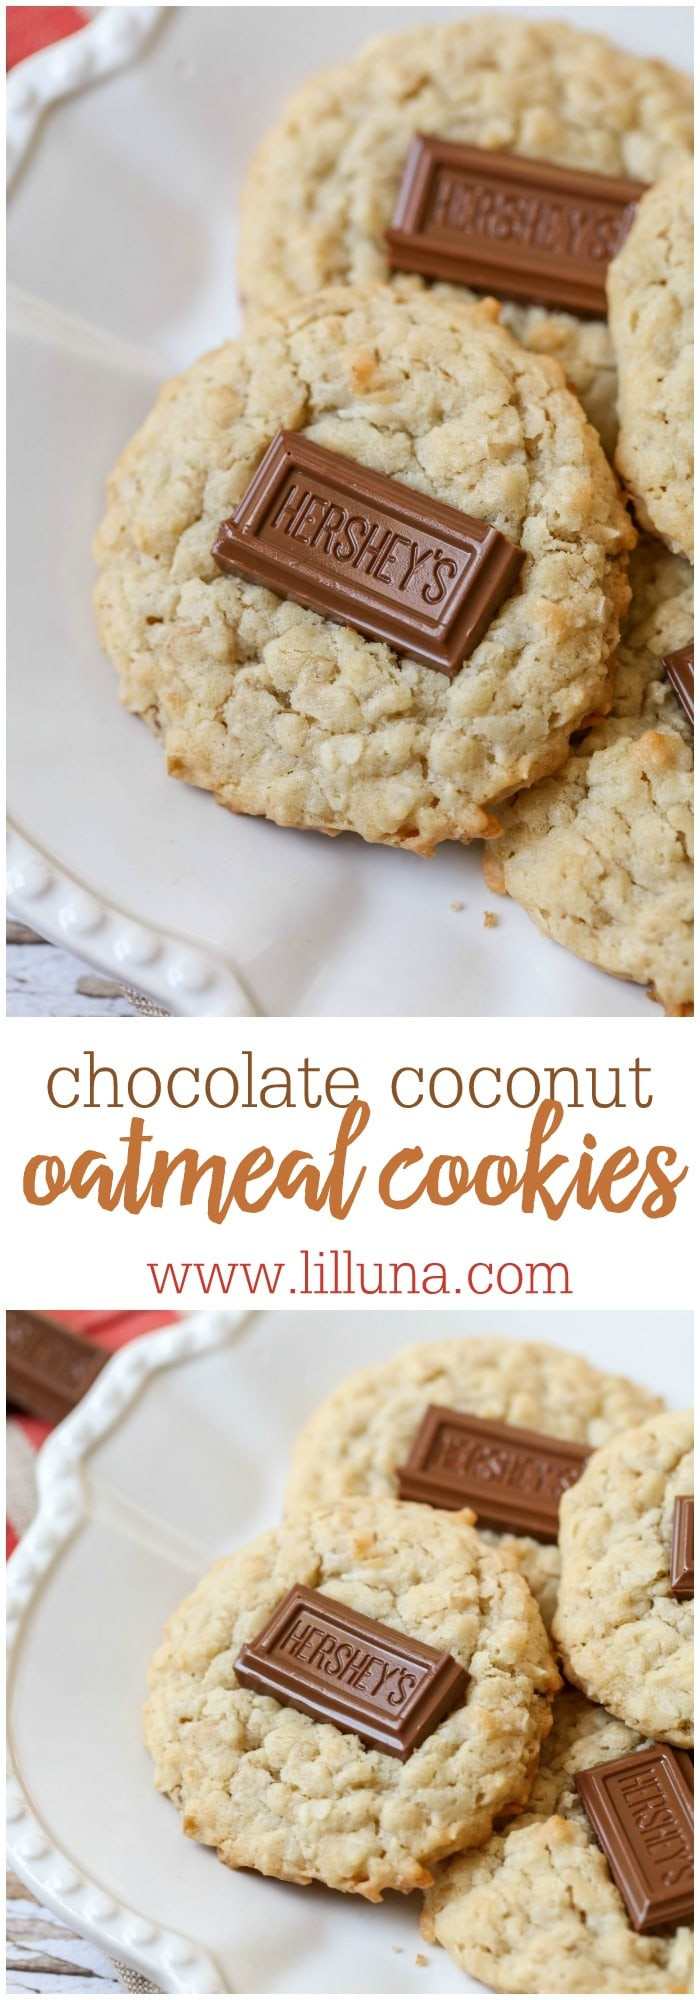 Coconut Oatmeal Cookies  Chocolate Coconut Oatmeal Cookies Lil Luna